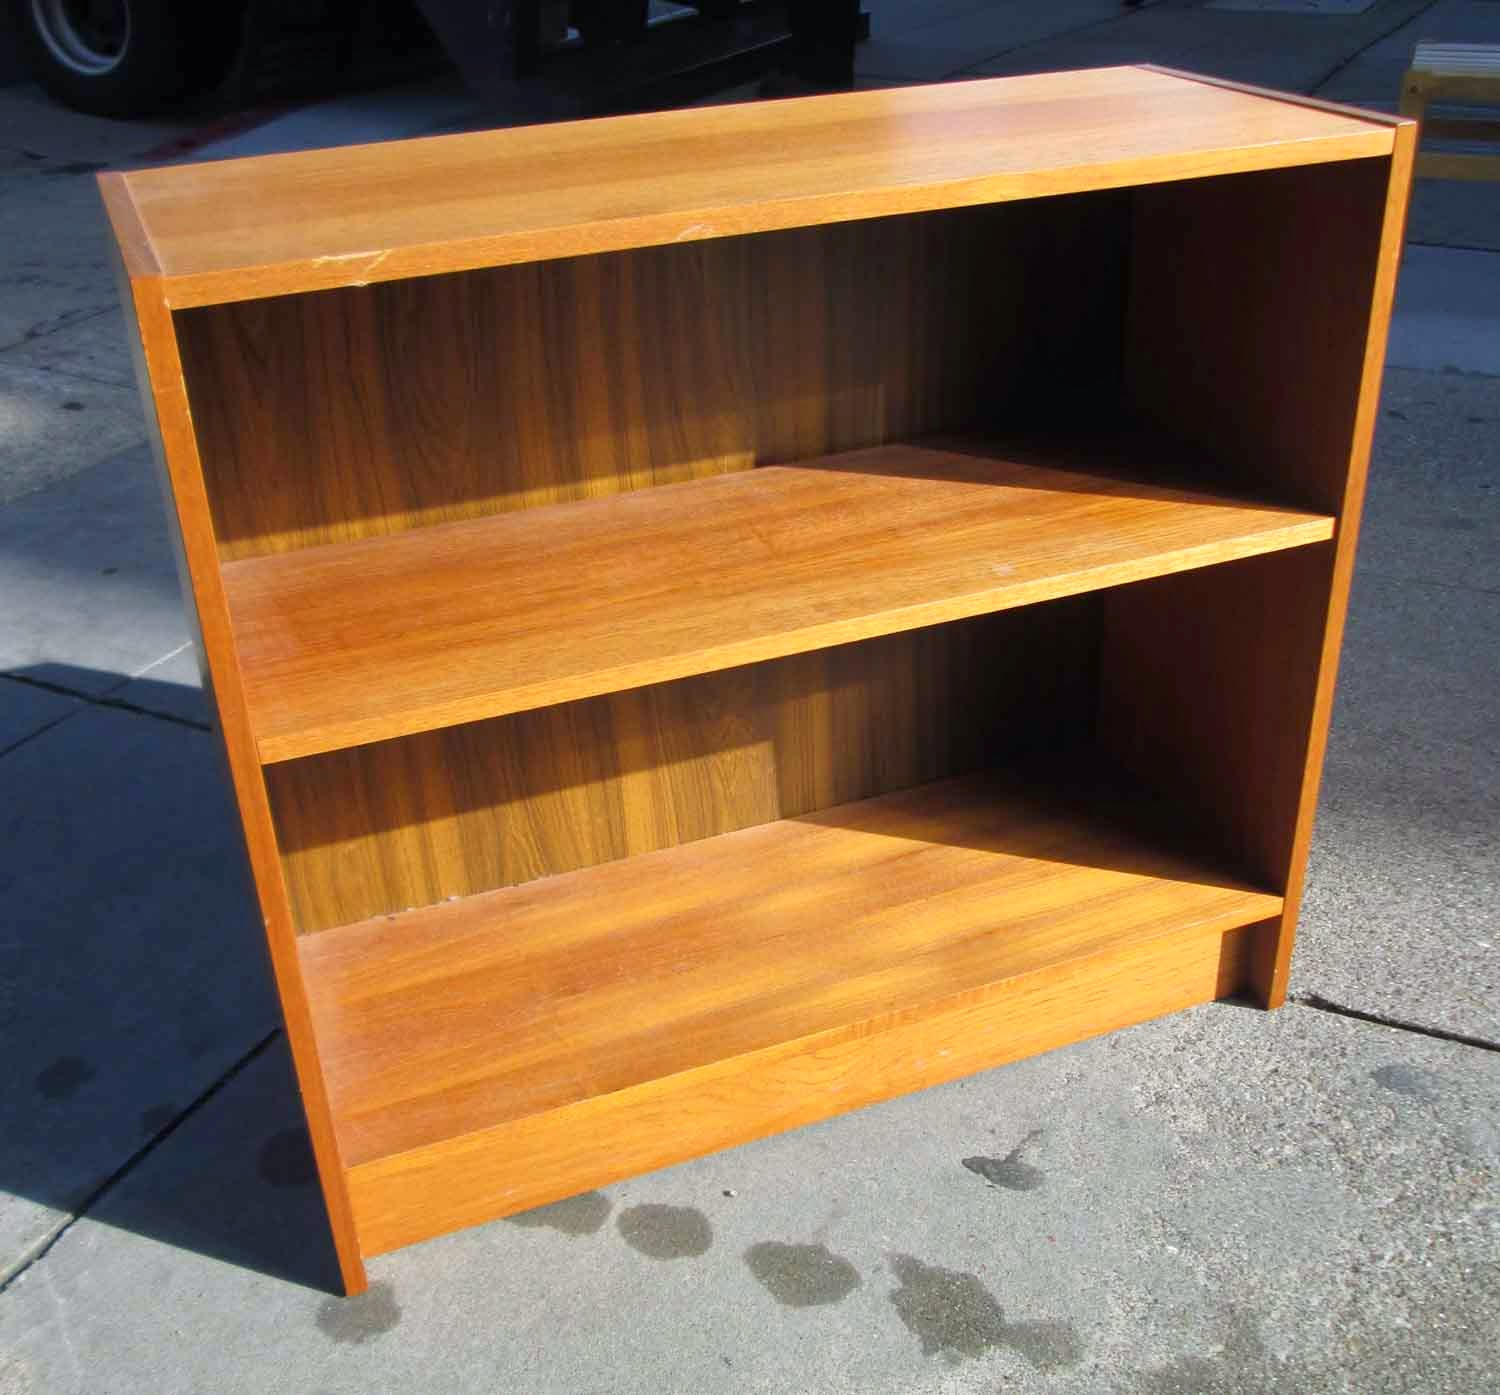 UHURU FURNITURE & COLLECTIBLES: SOLD Danish Style Teak